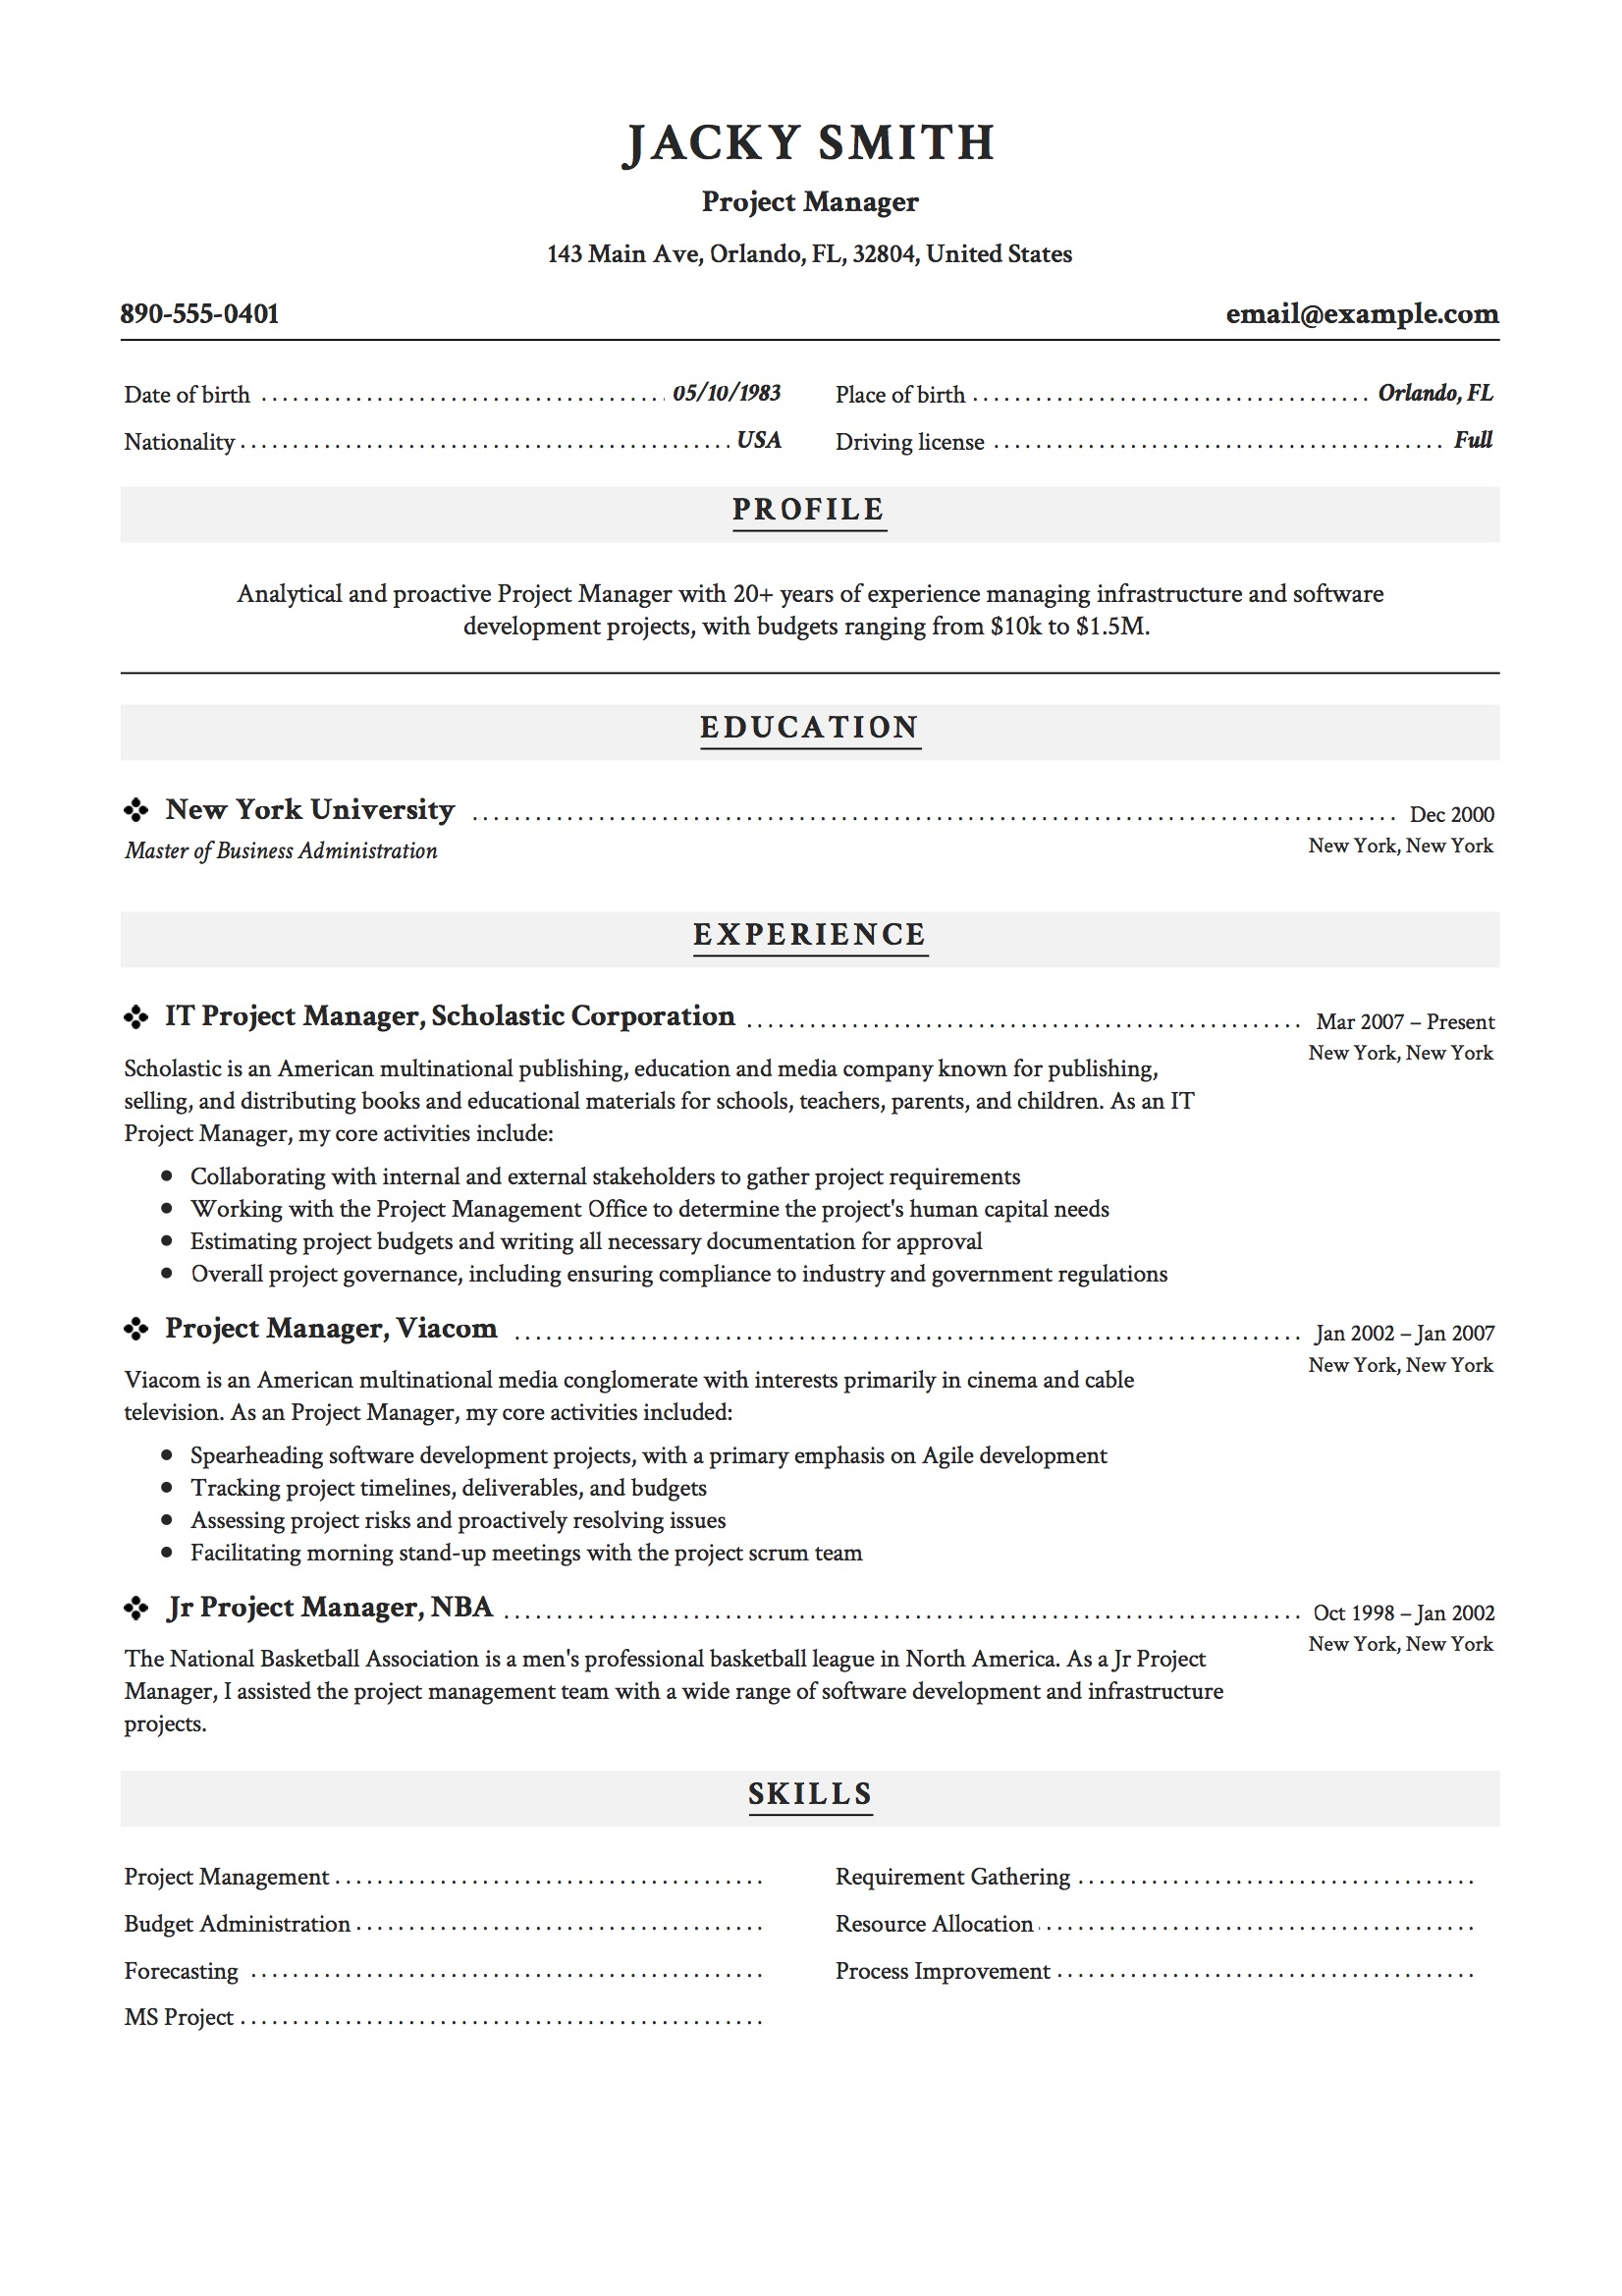 12 Project Manager Resume Samples 2018 Free Downloads